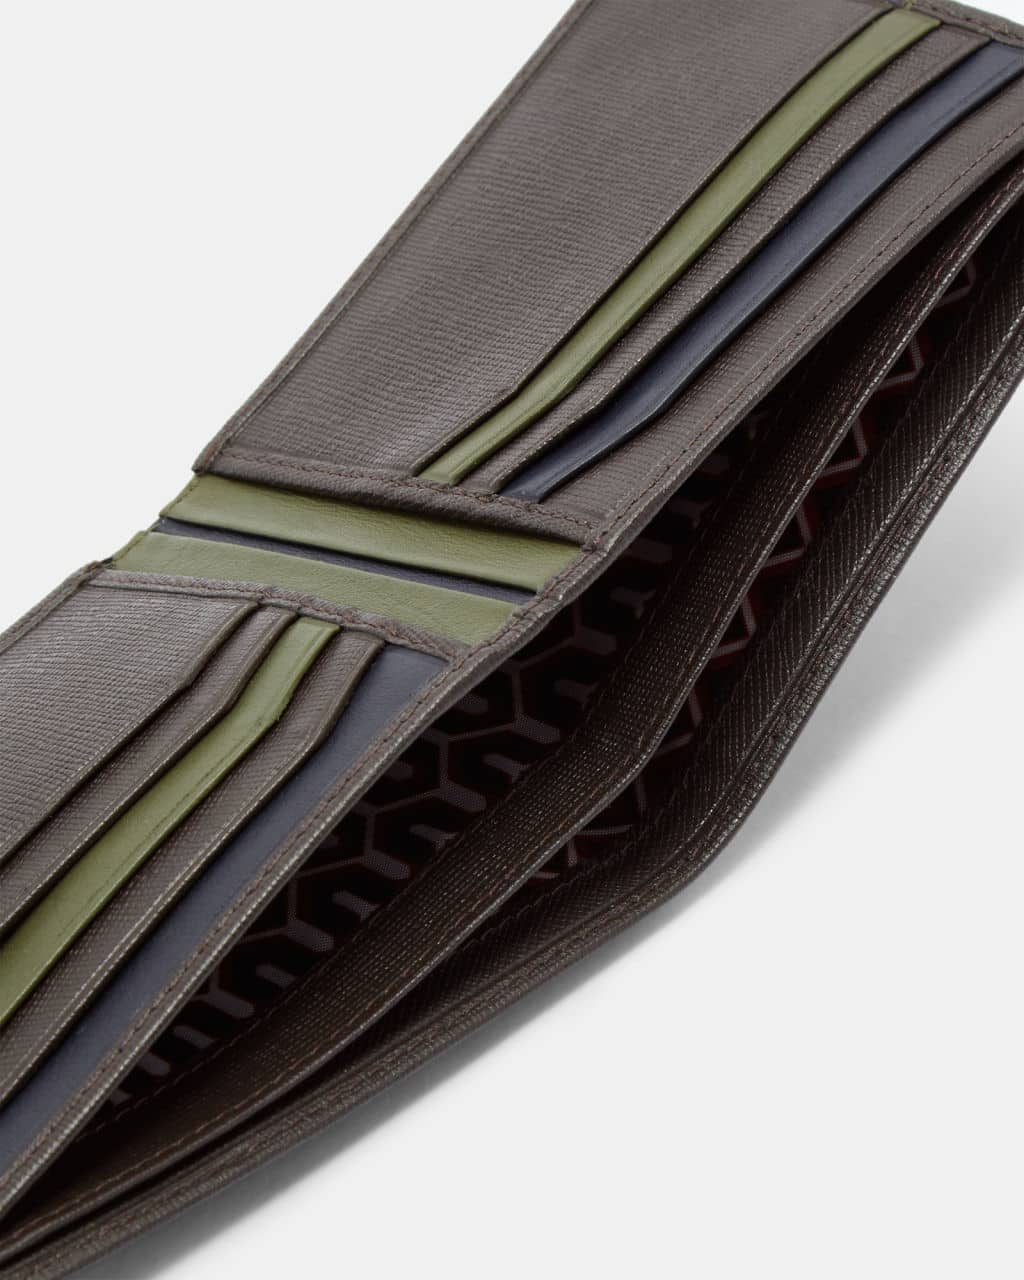 4f986fedfb0 TED BAKER LONDON MUSTA CHOCOLATE BROWN STRIPED LEATHER BIFOLD WALLET